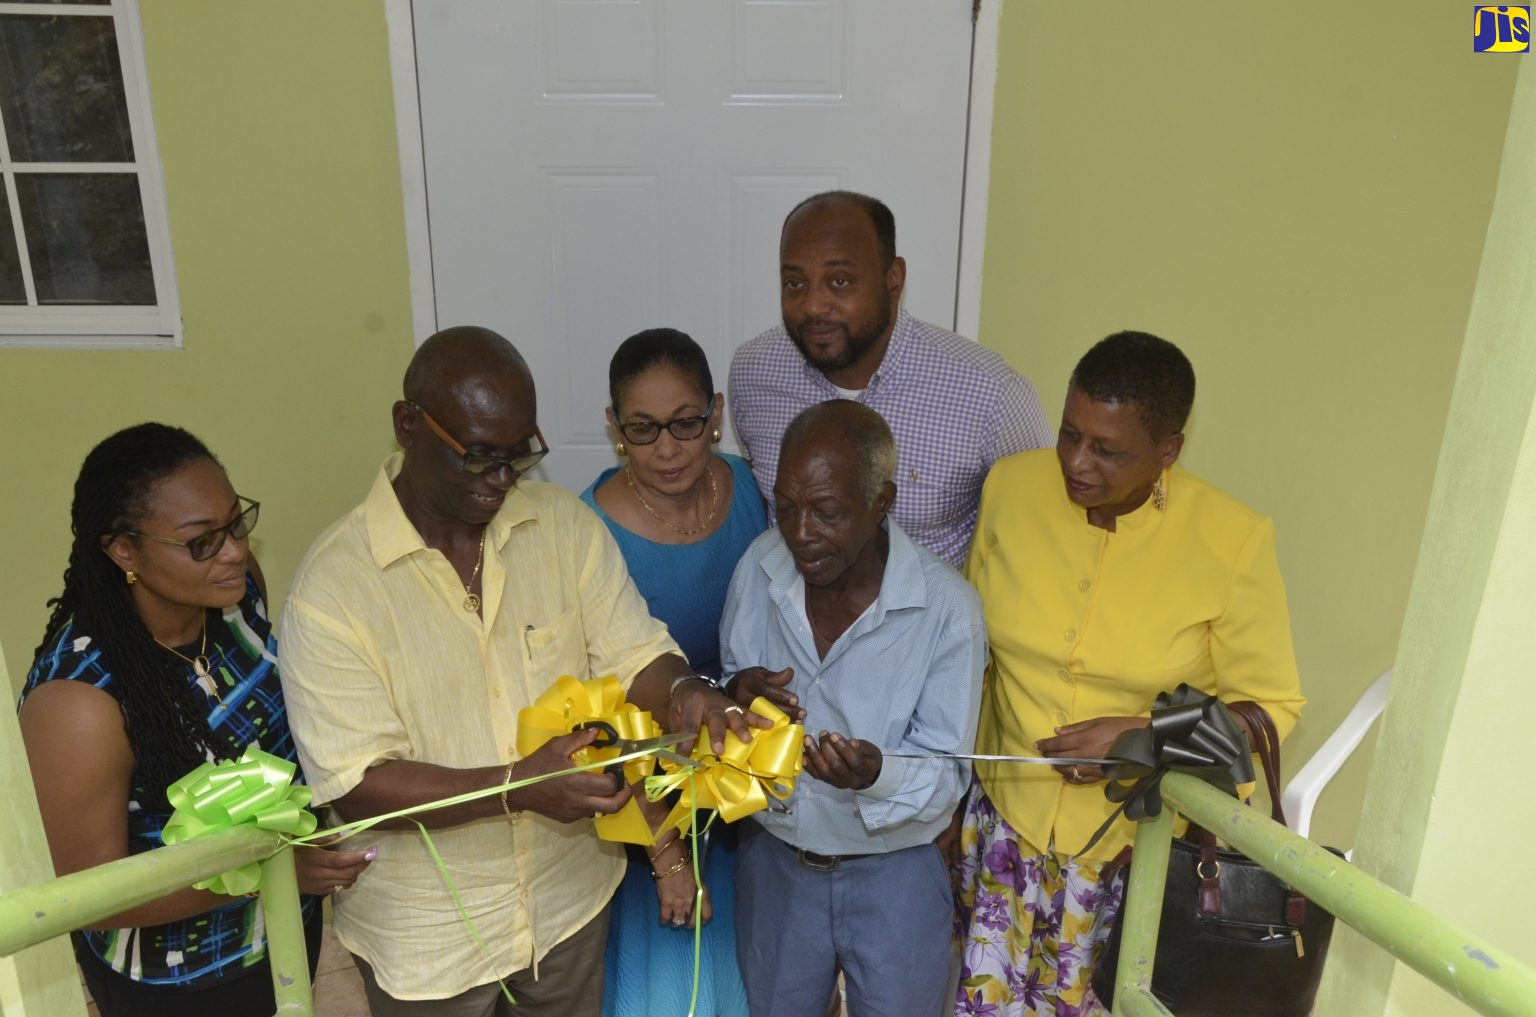 Minister presents St. Ann senior citizens with new homes